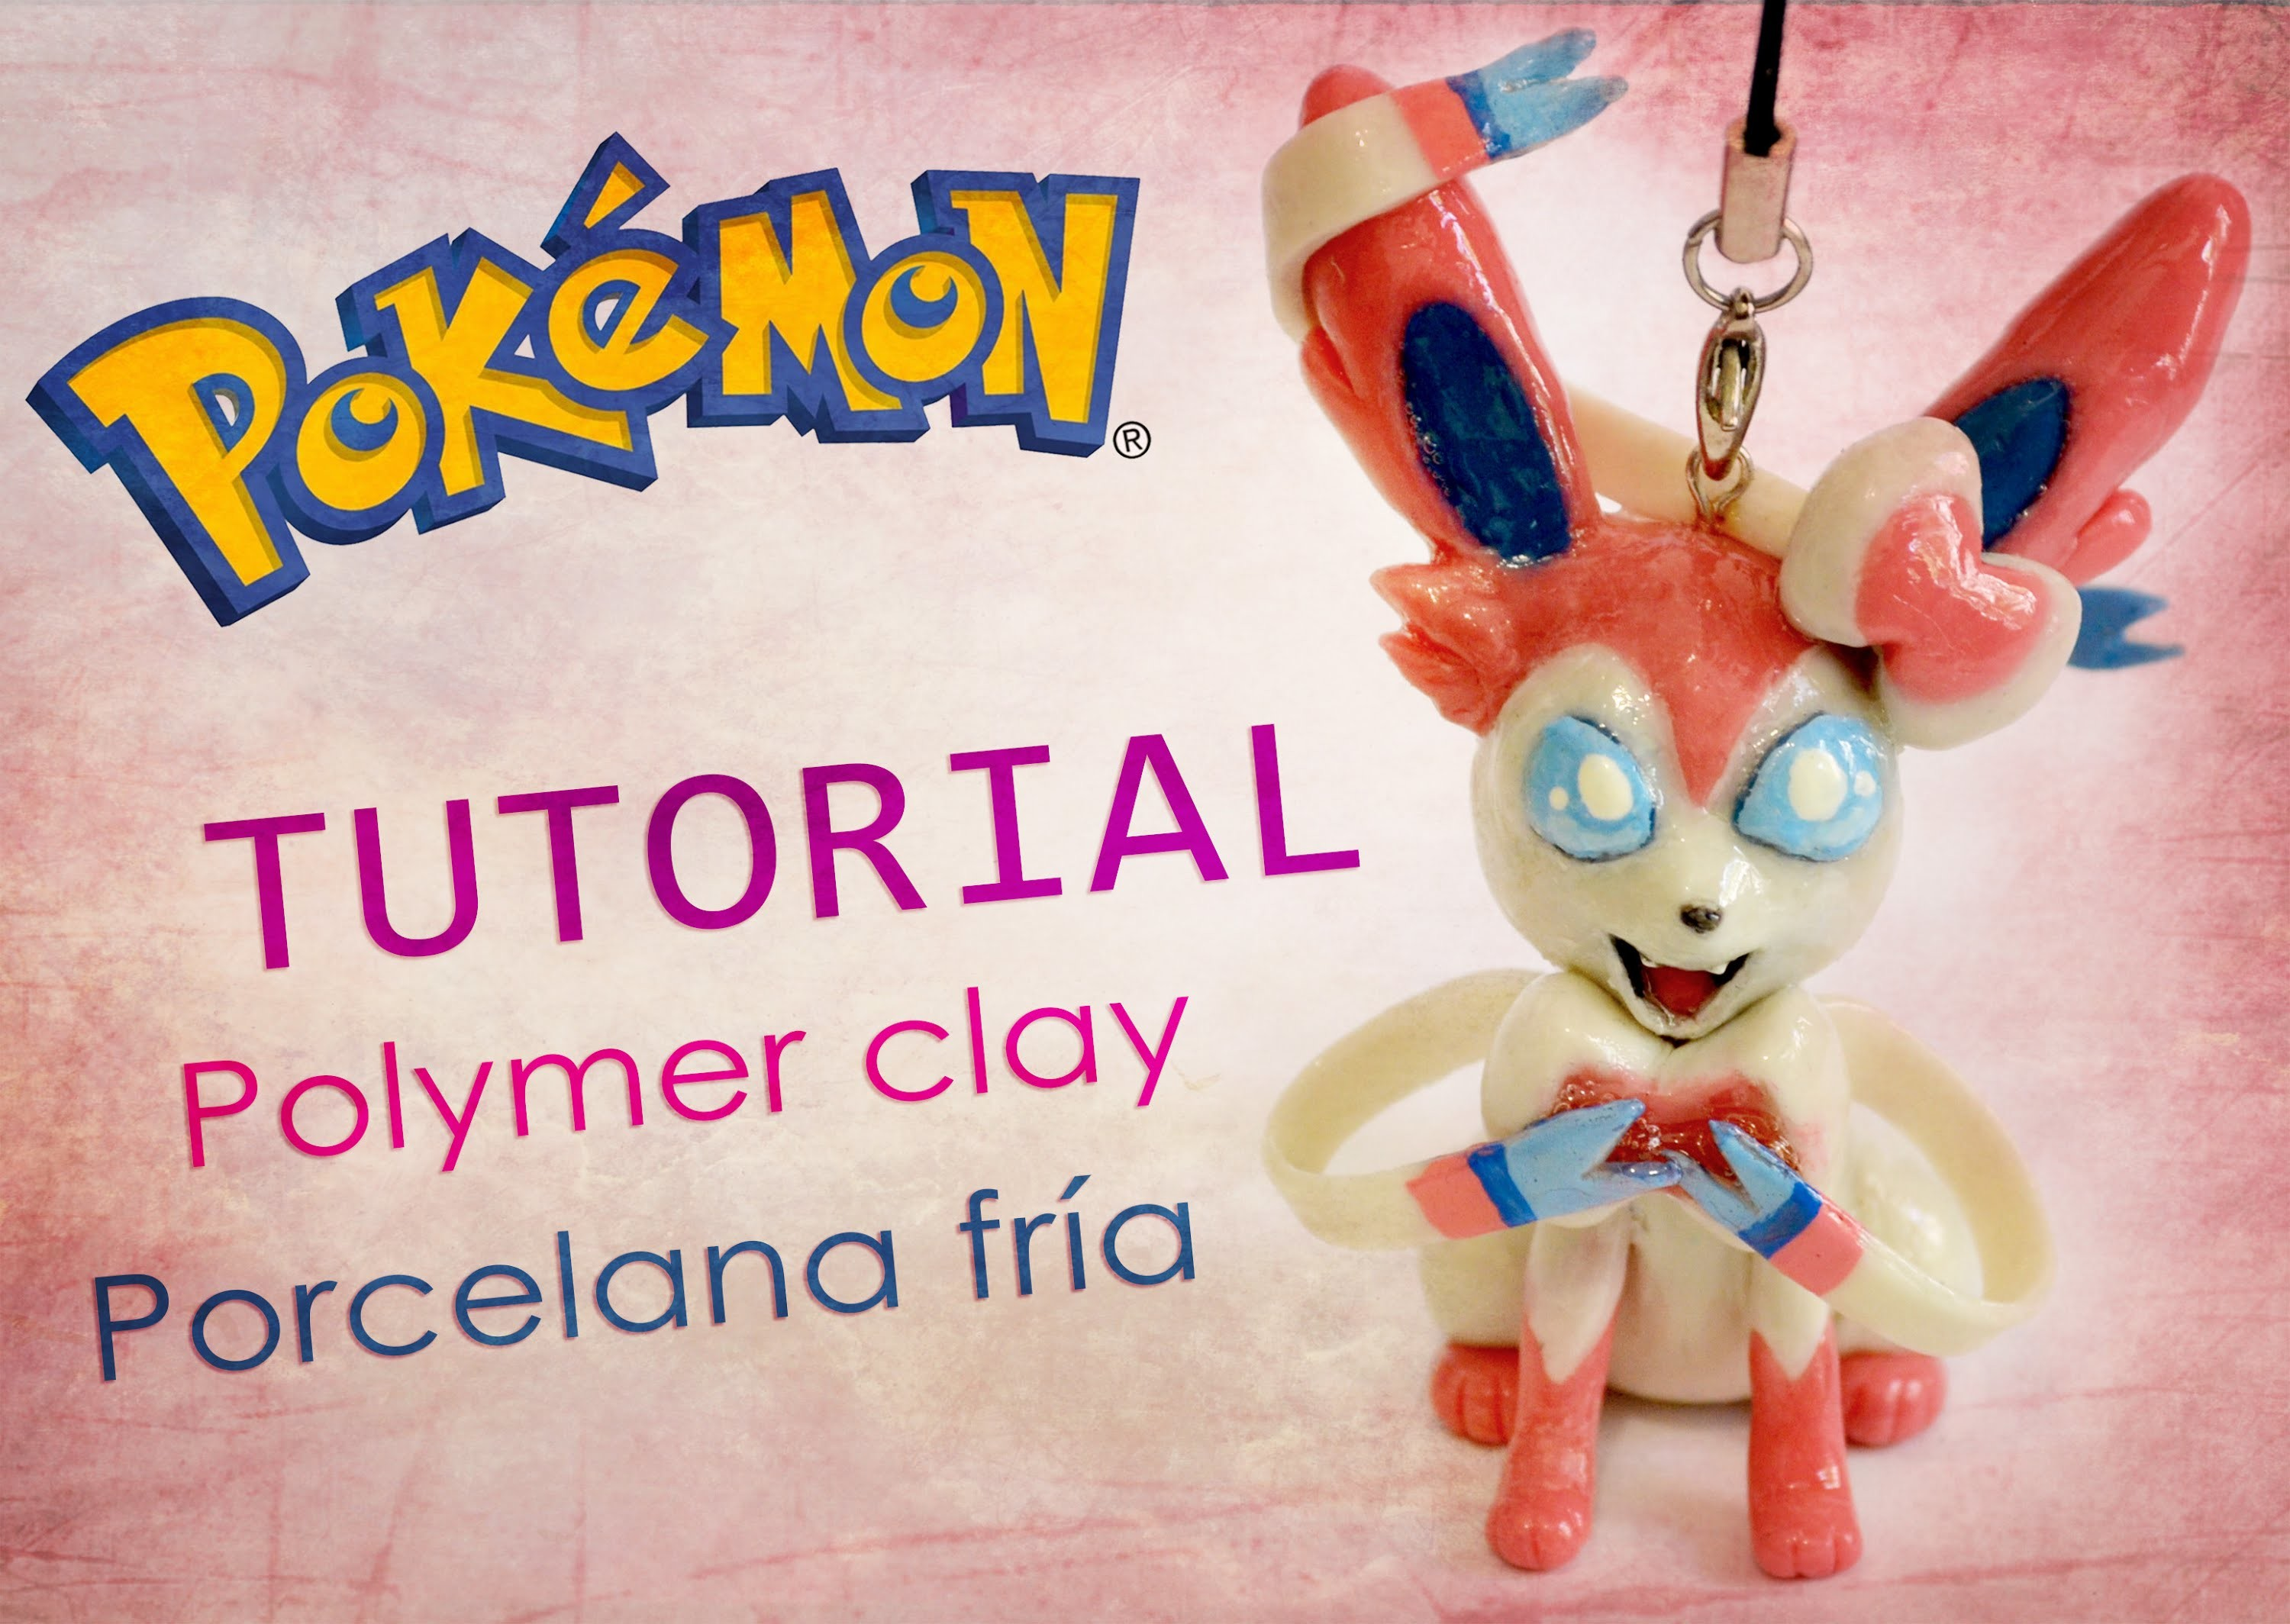 DIY Pokémon - tutorial Sylveon polymer clay - porcelana fría - plasticine